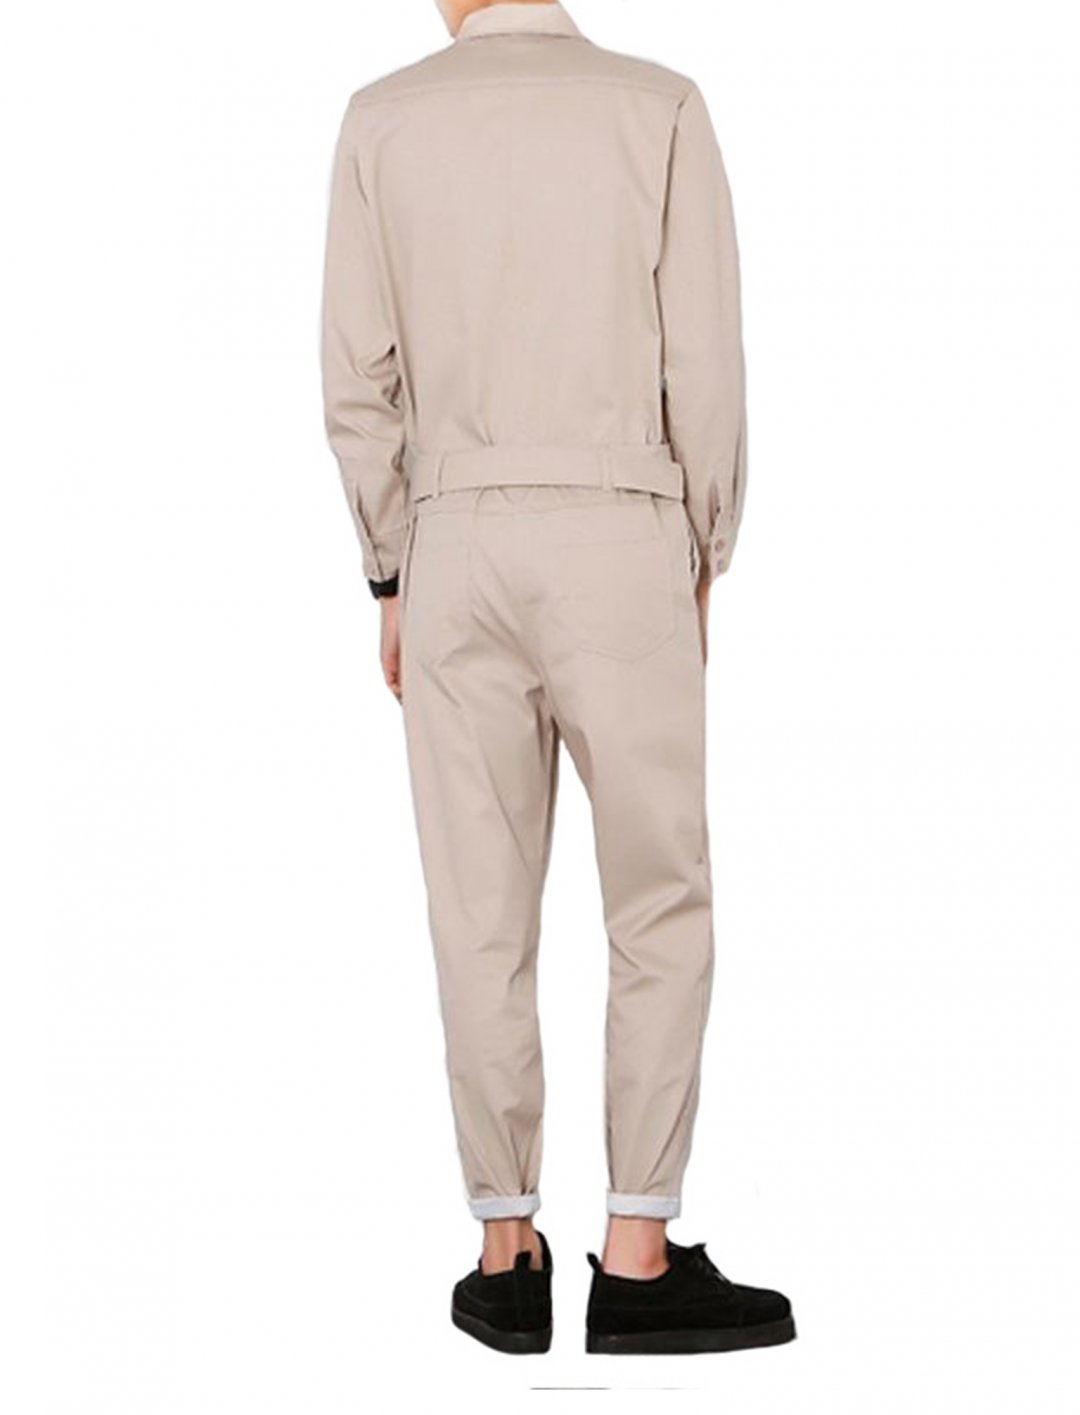 "Long Sleeve Zip Up Jumpsuit {""id"":5,""product_section_id"":1,""name"":""Clothing"",""order"":5}"